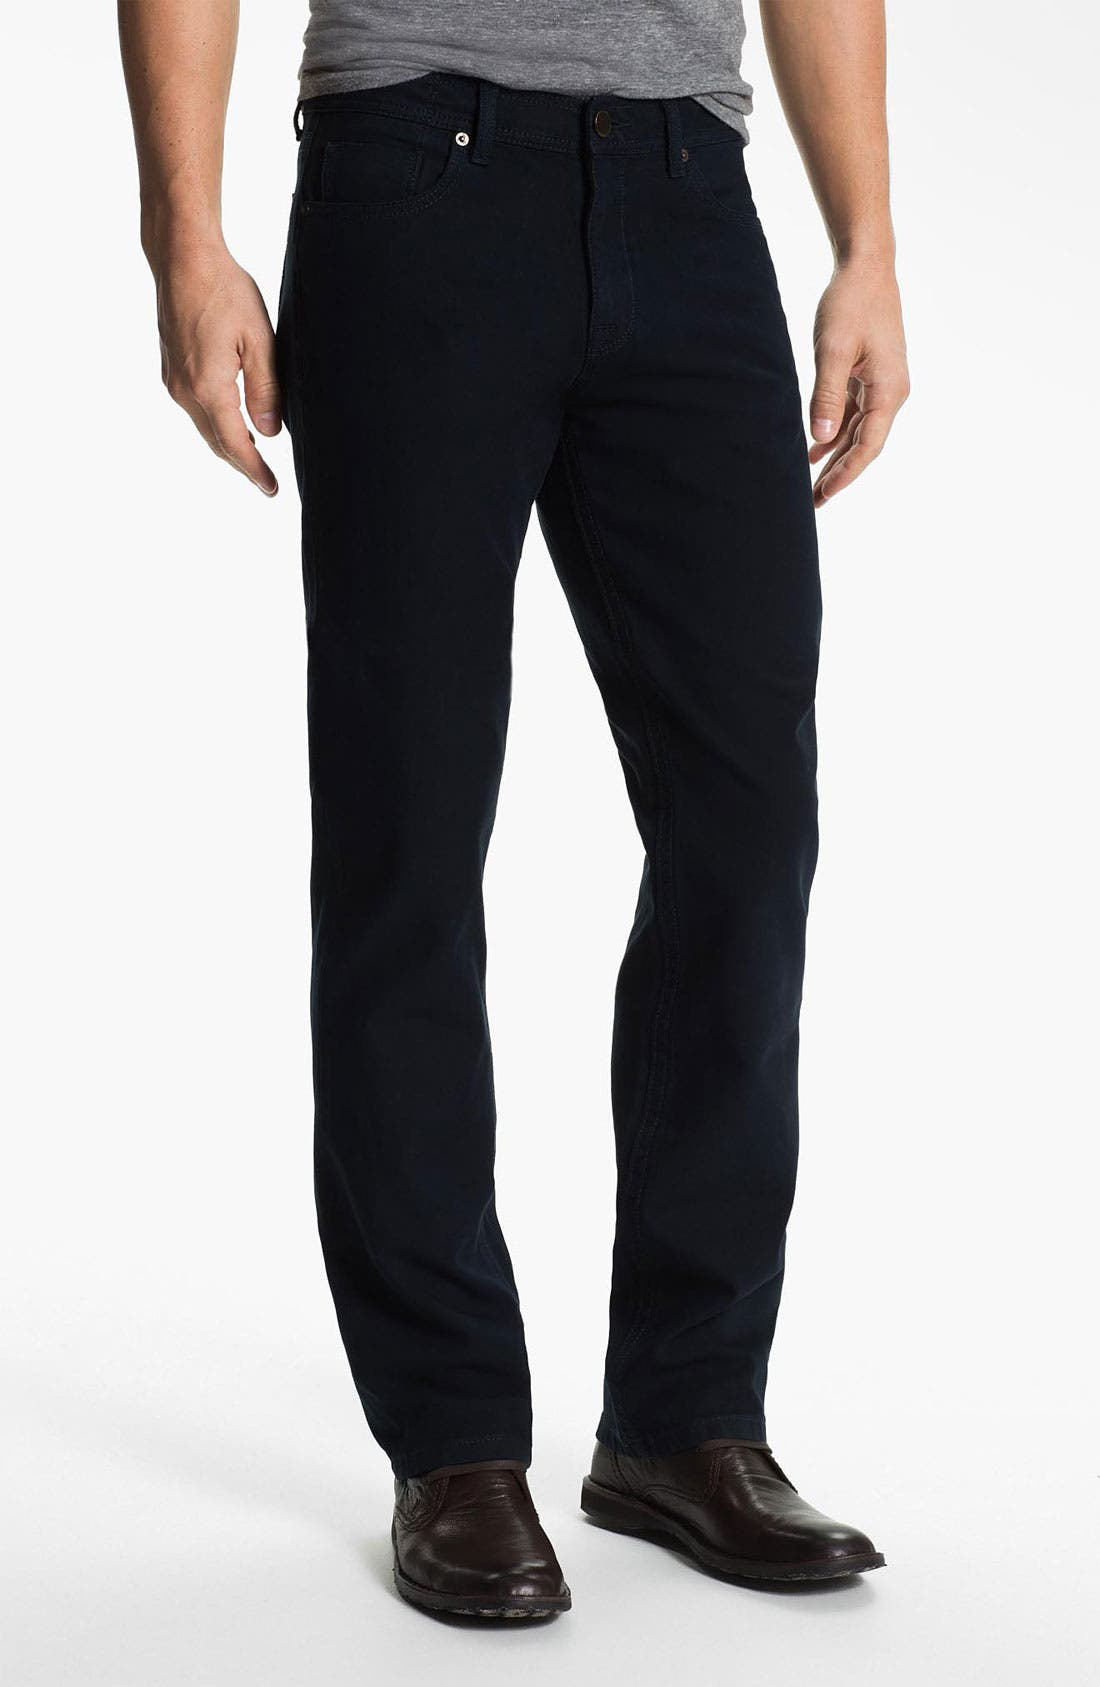 Alternate Image 1 Selected - DL1961 'Vince' Straight Leg Jeans (Storm)